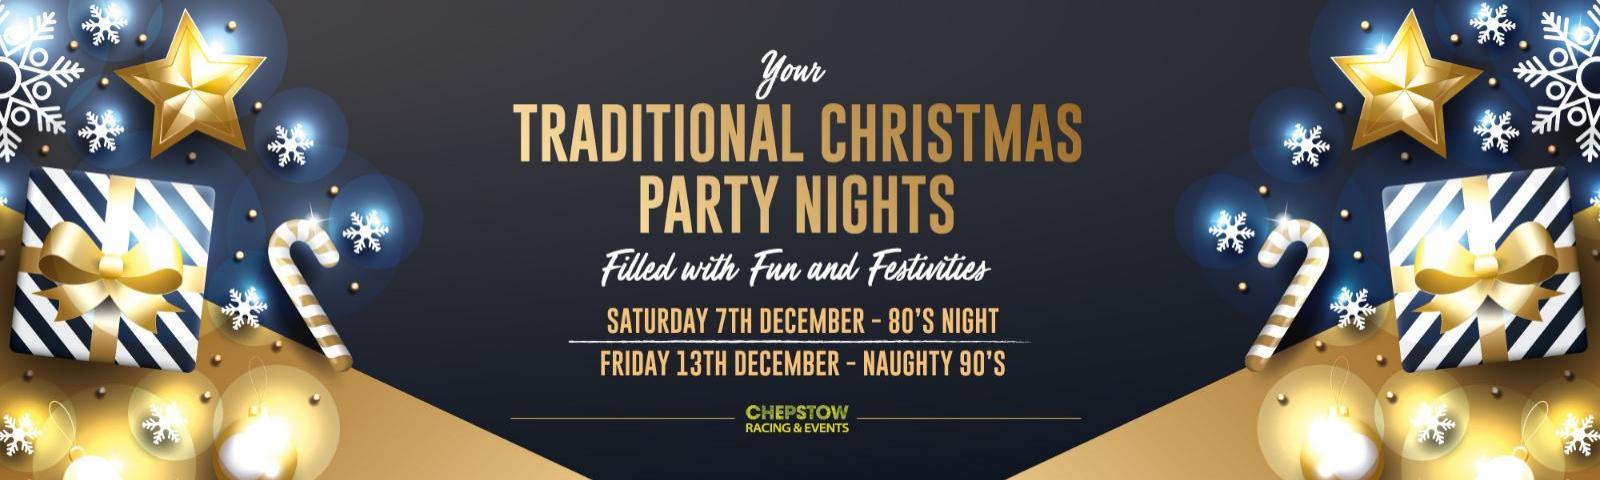 Christmas Party 2019 Logo.Christmas Parties 2019 Monmouthshire Chepstow Racecourse